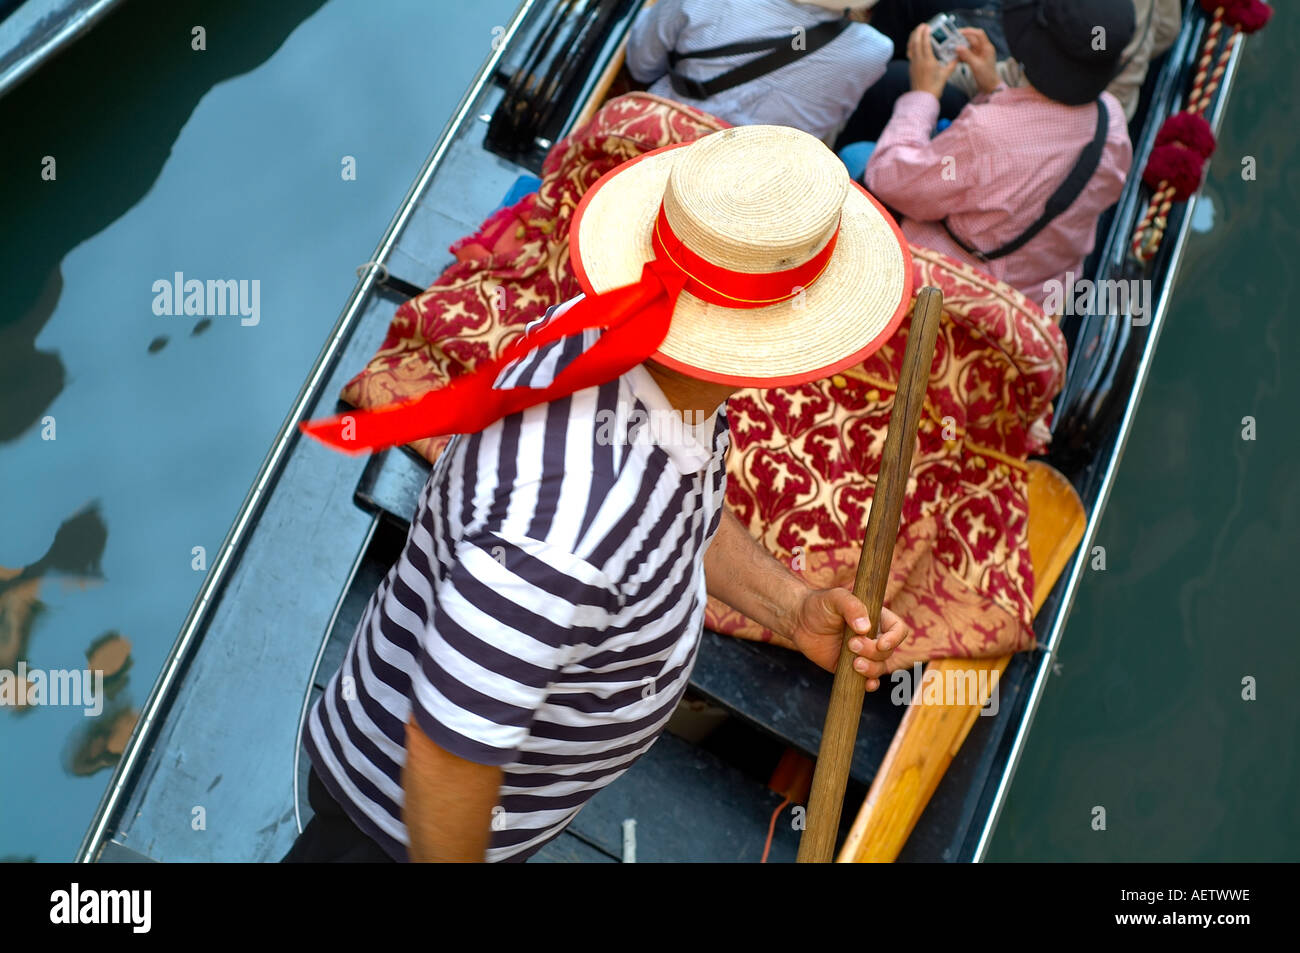 91e58e51abb Gondolier in a gondola wearing a straw hat with red ribbon - Stock Image